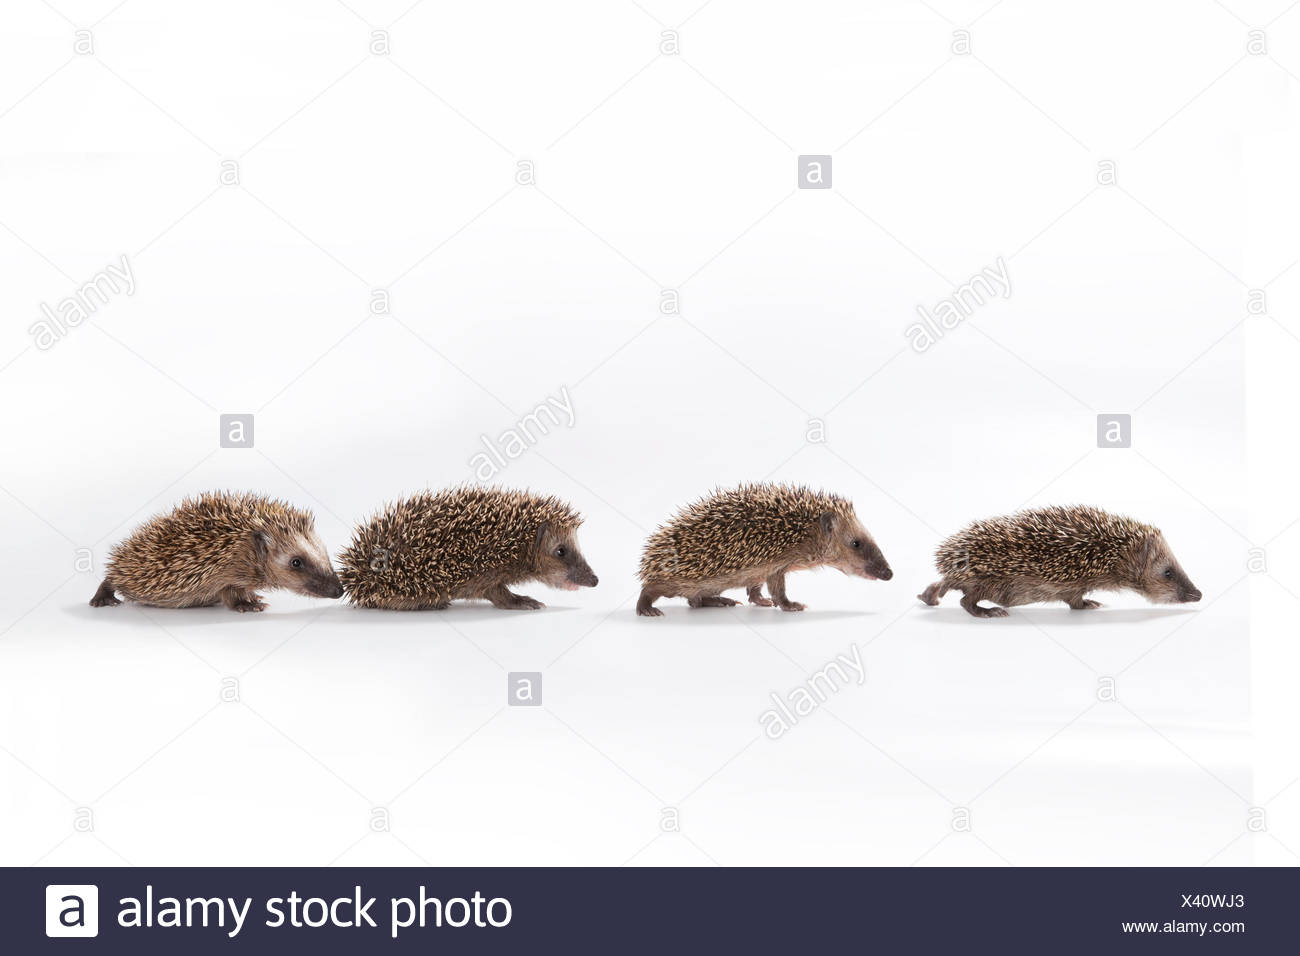 European hedgehog (Erinaceus europaeus), four young hedgehogs walking in a line, captive Stock Photo